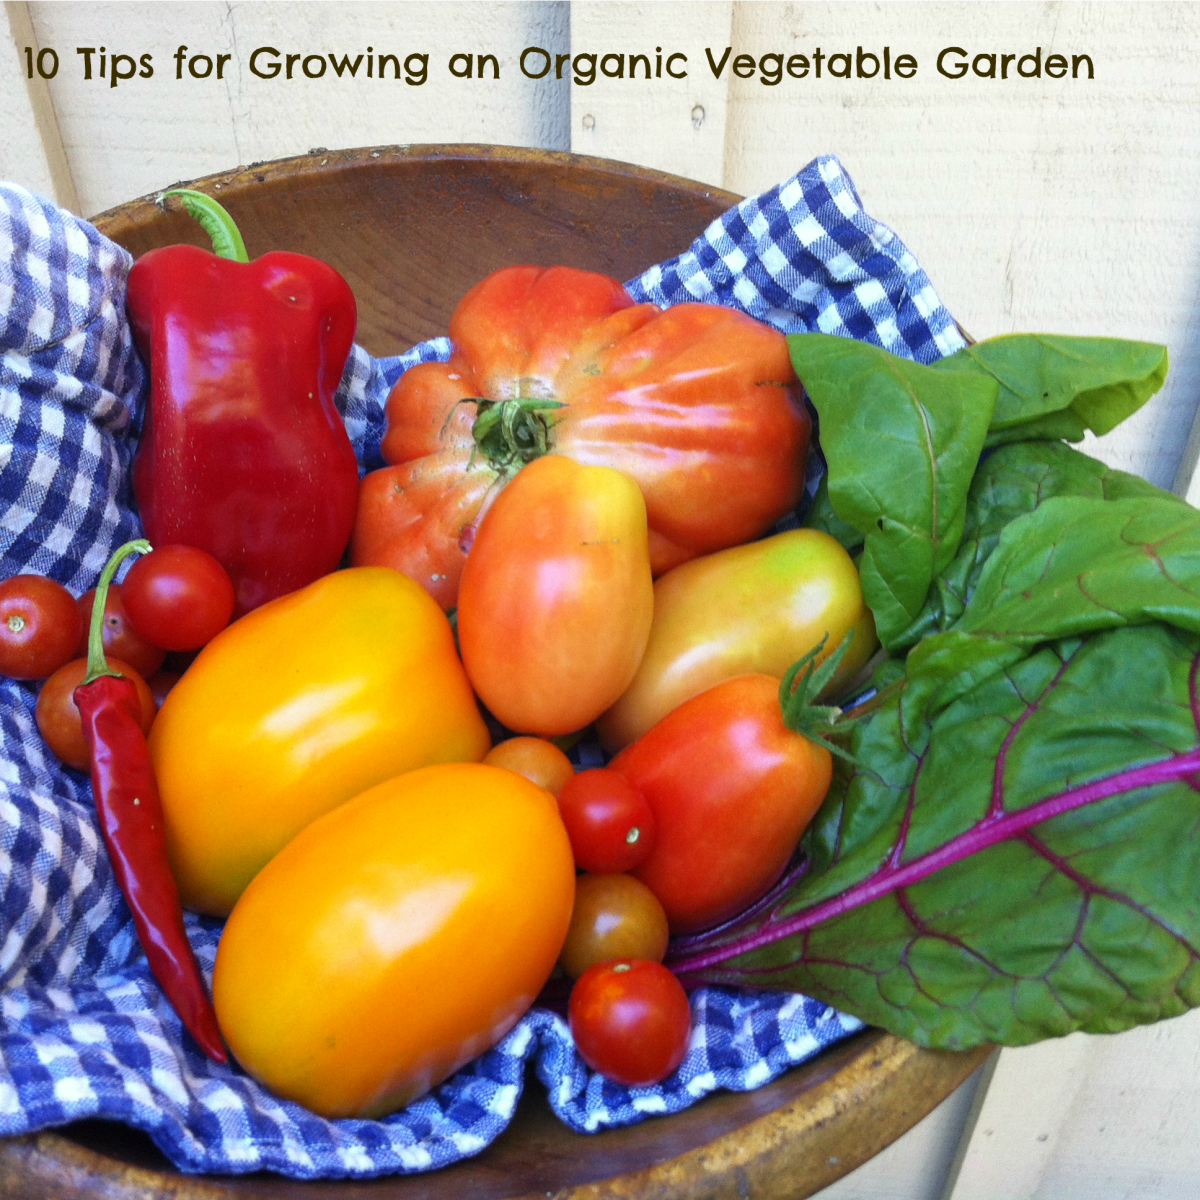 10 Tips for Growing an Organic Vegetable Garden